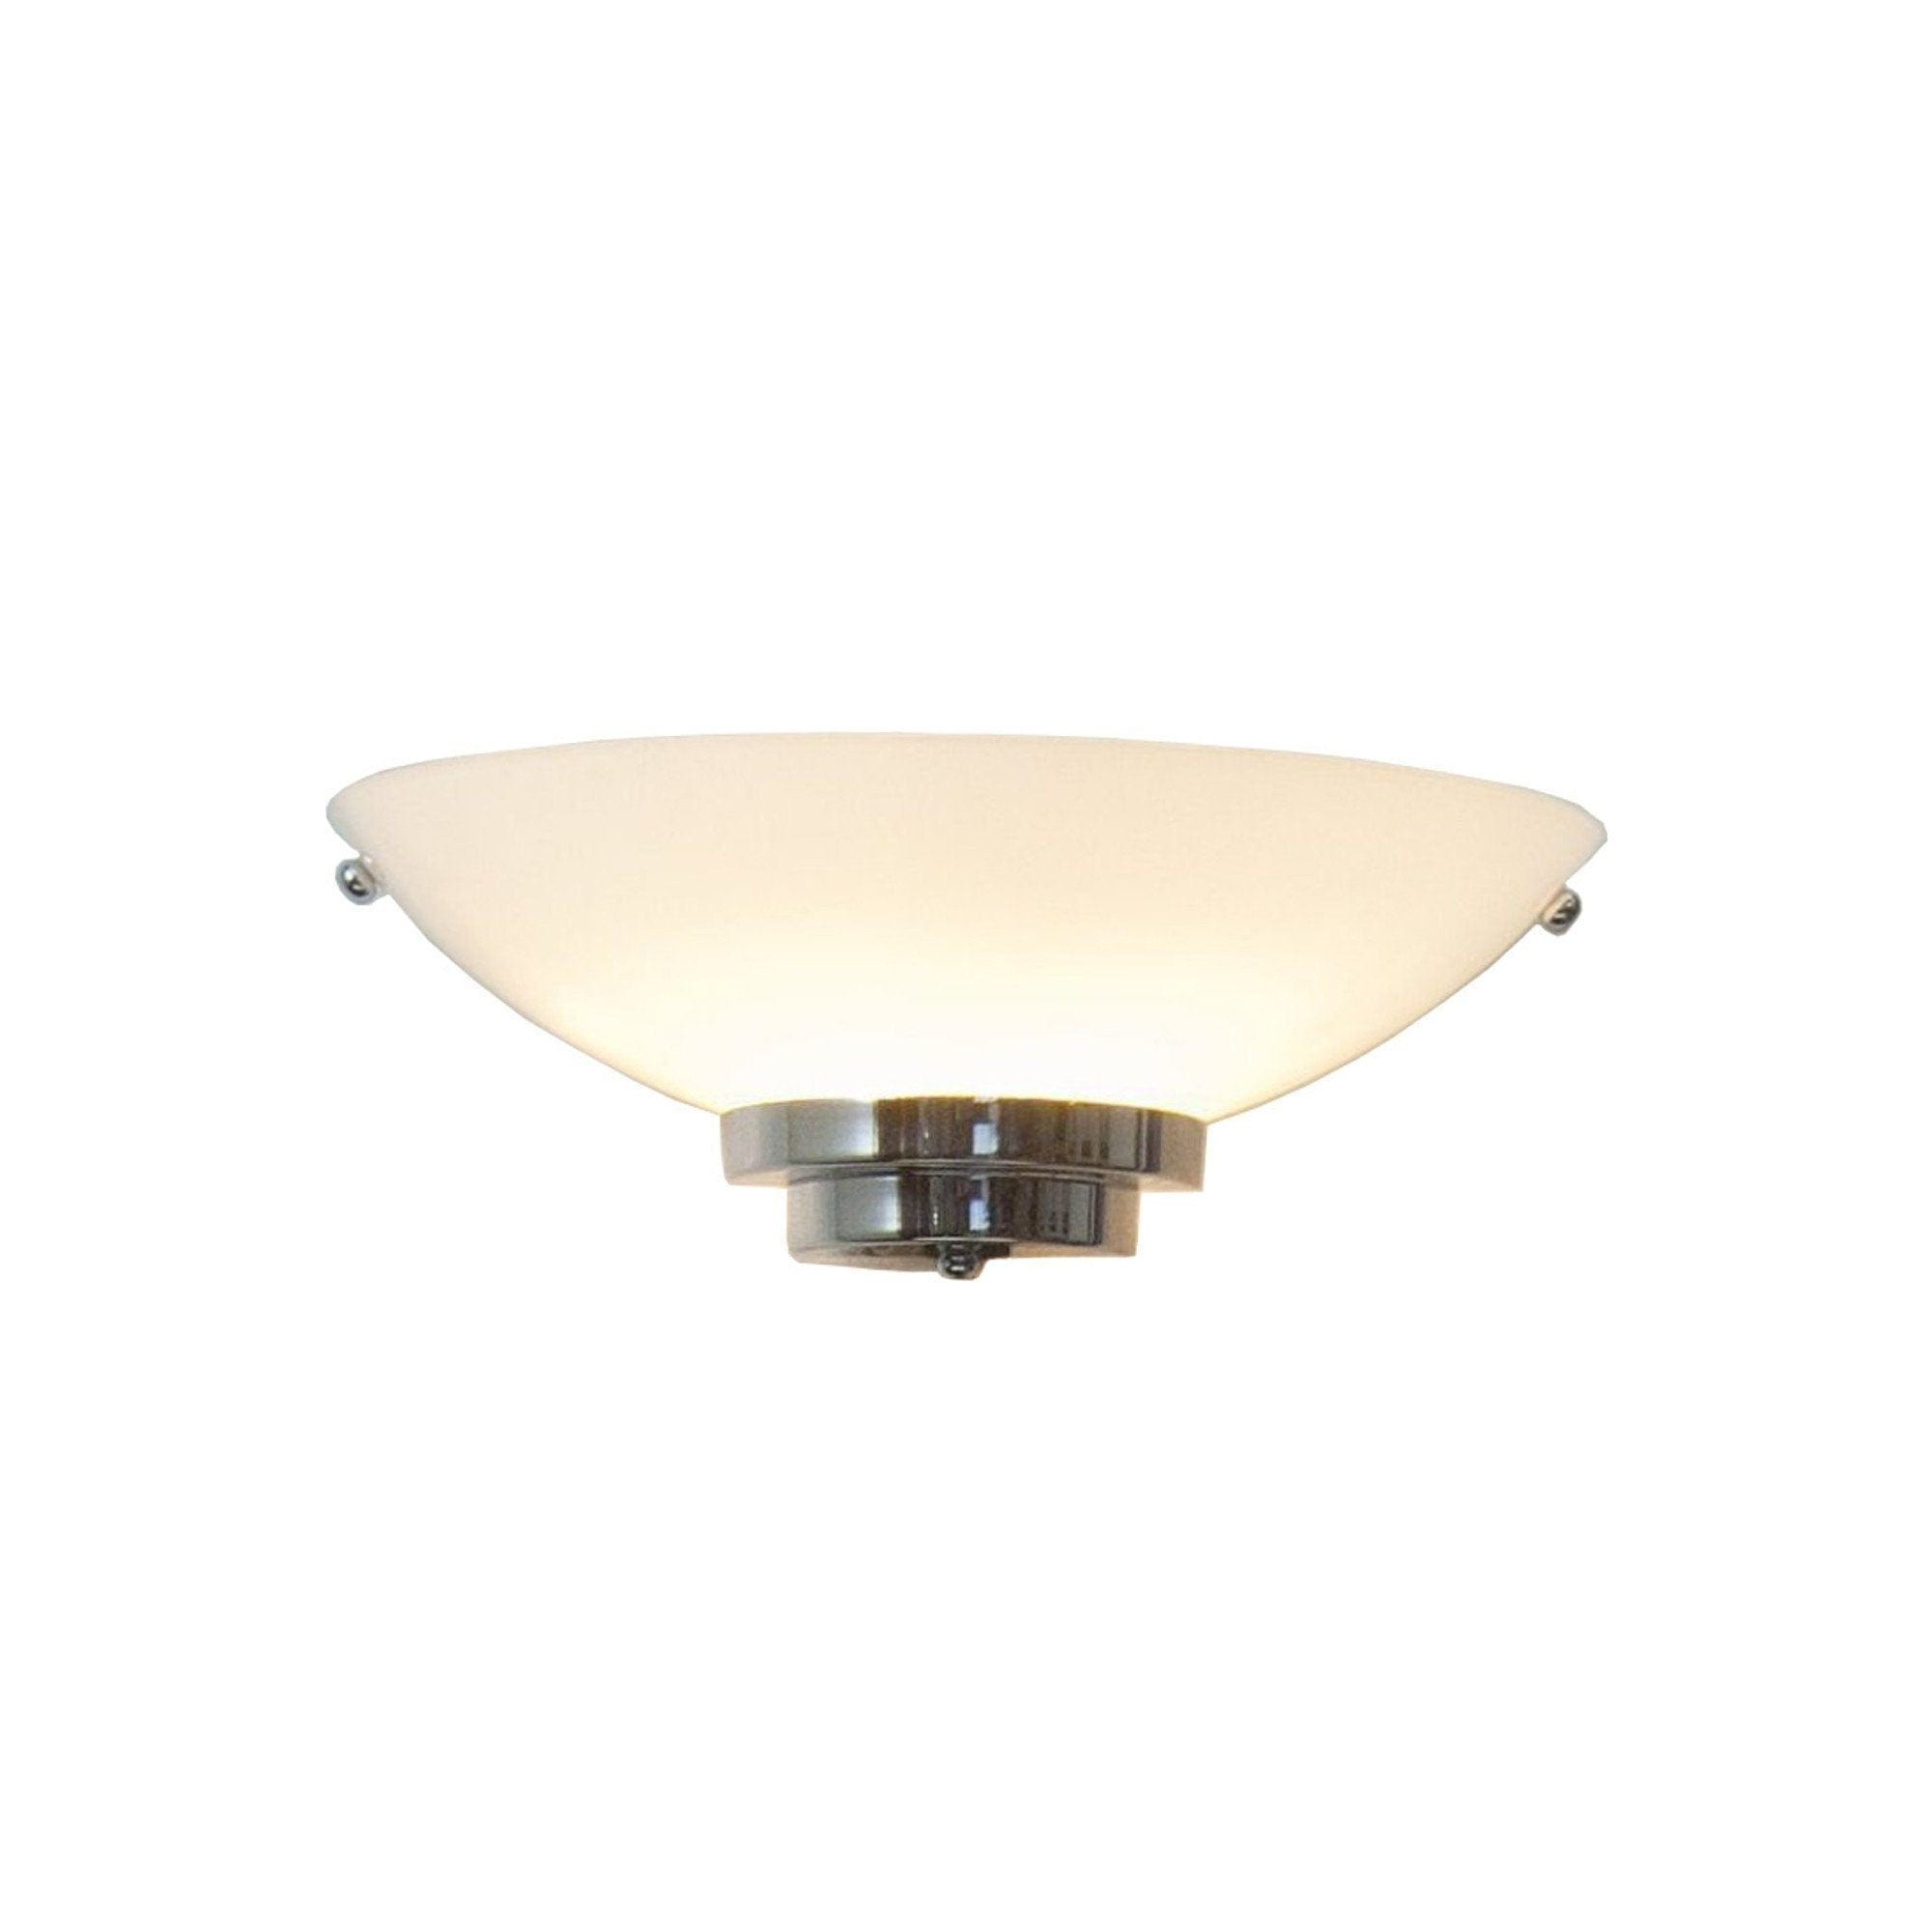 at z lights brass germany id and art light beautiful lighting glass ceiling for deco furniture sale chandeliers ceilings f lamp pendant